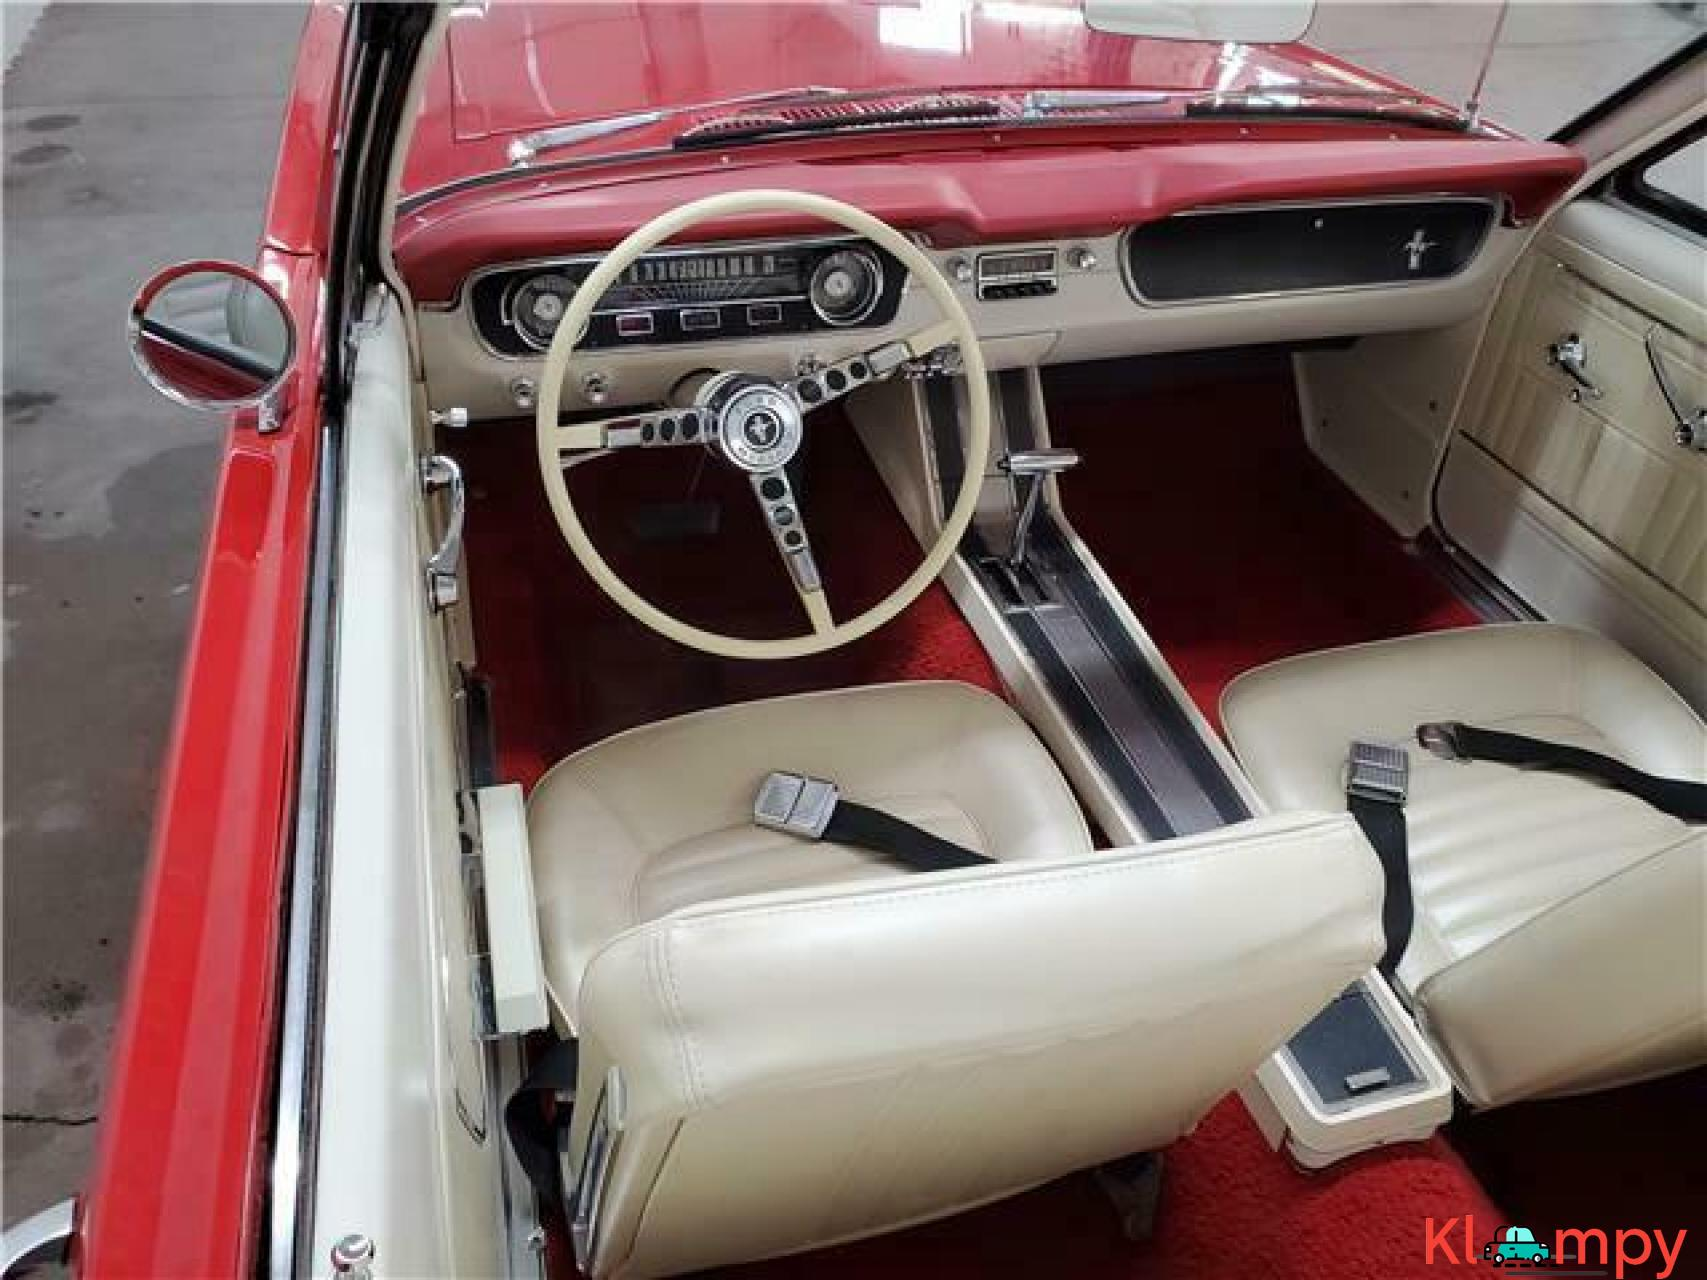 1965 Ford Mustang Rear Wheel Drive - 8/20